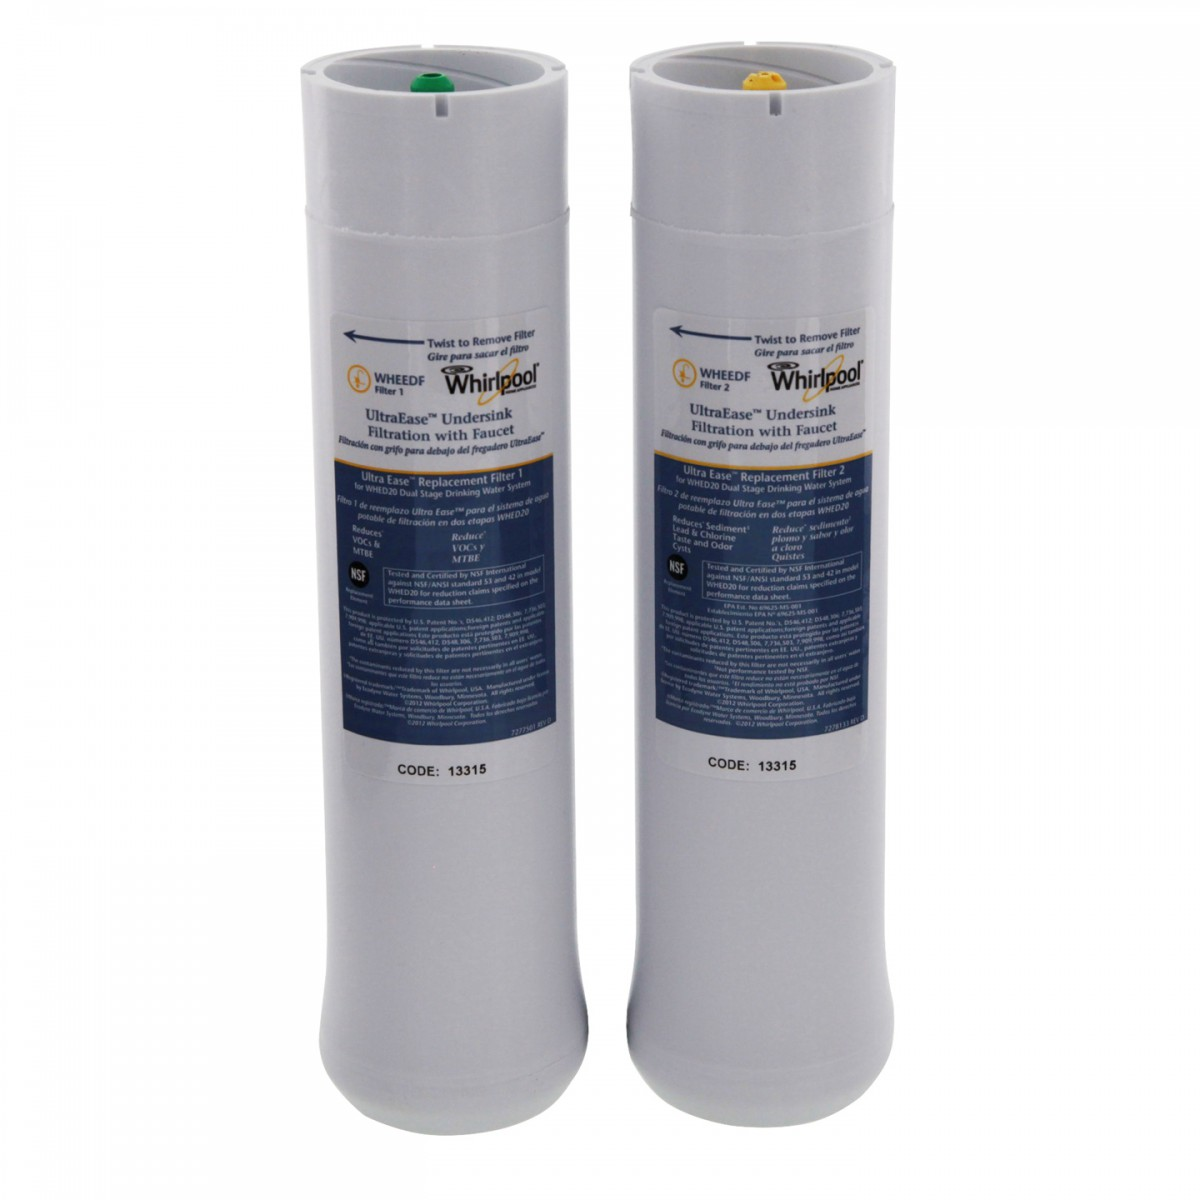 33a98b1a58 Discount Water Filters and Air Filters at Discount Filter ...